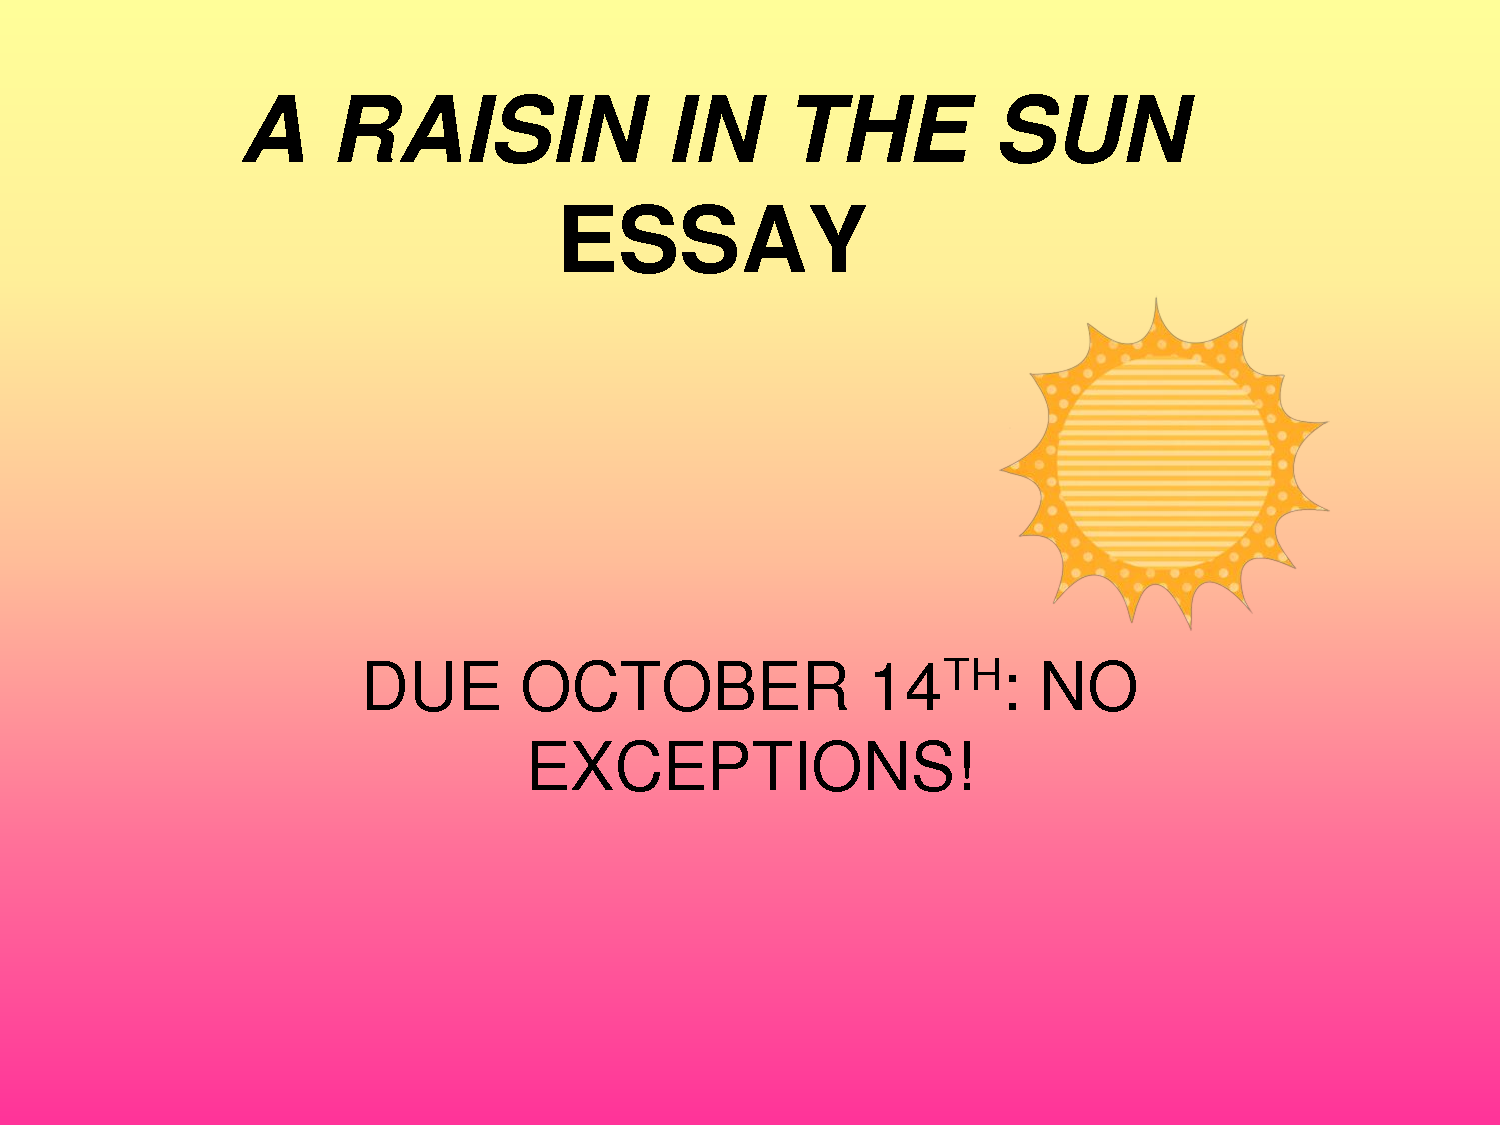 a raisin in the sun quotes quotesgram raisin in the sun essay revisions quote advertisement